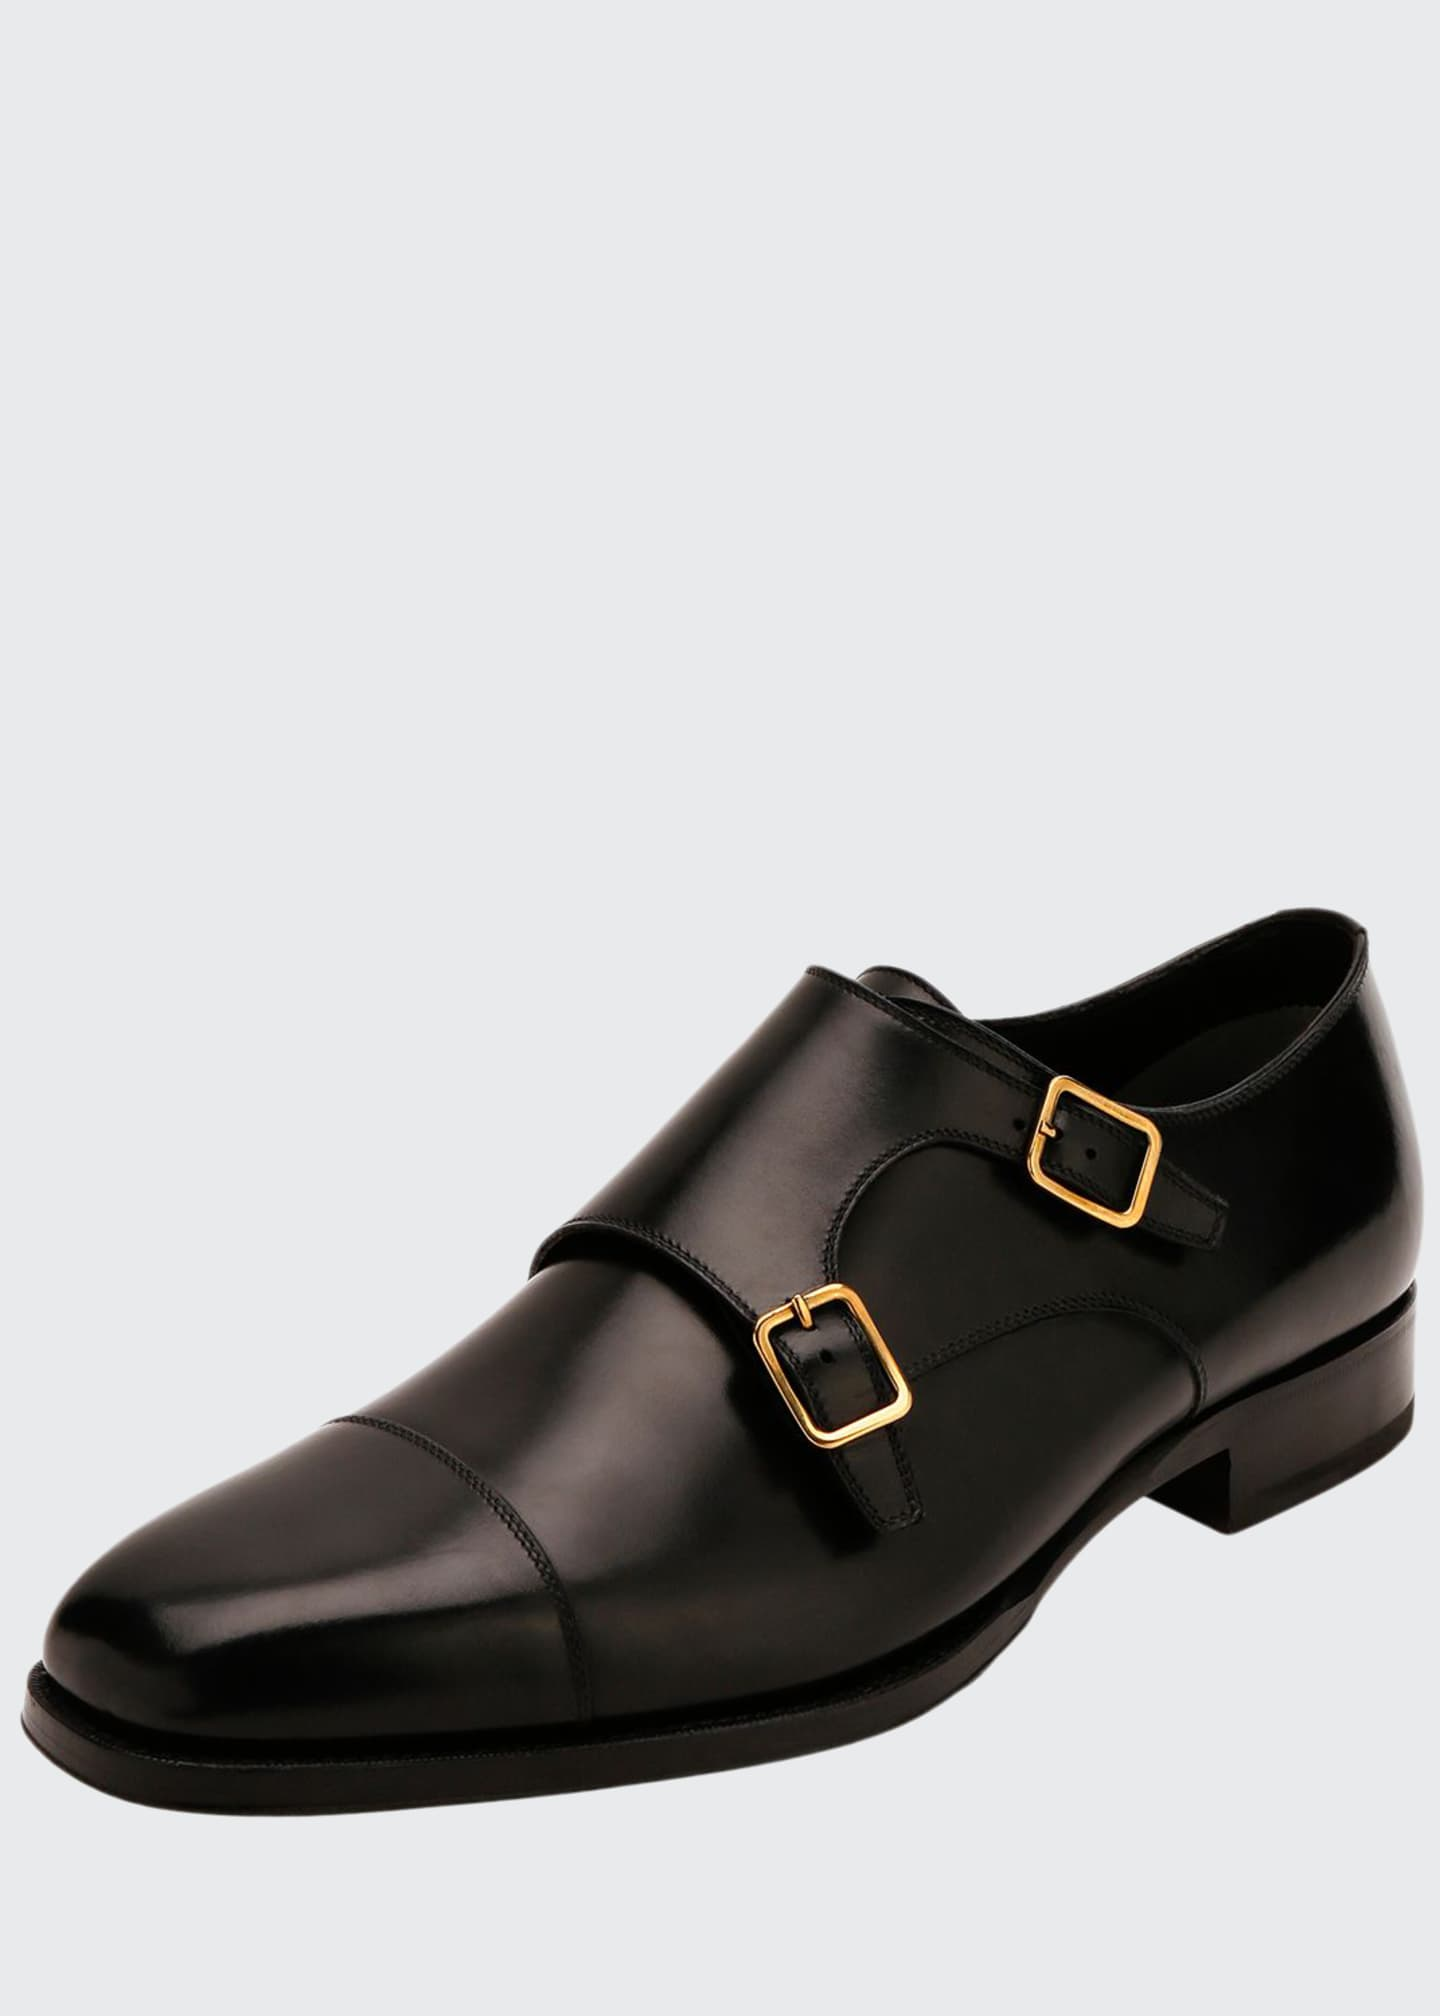 Image 1 of 3: Men's Double-Monk Strap Leather Loafers